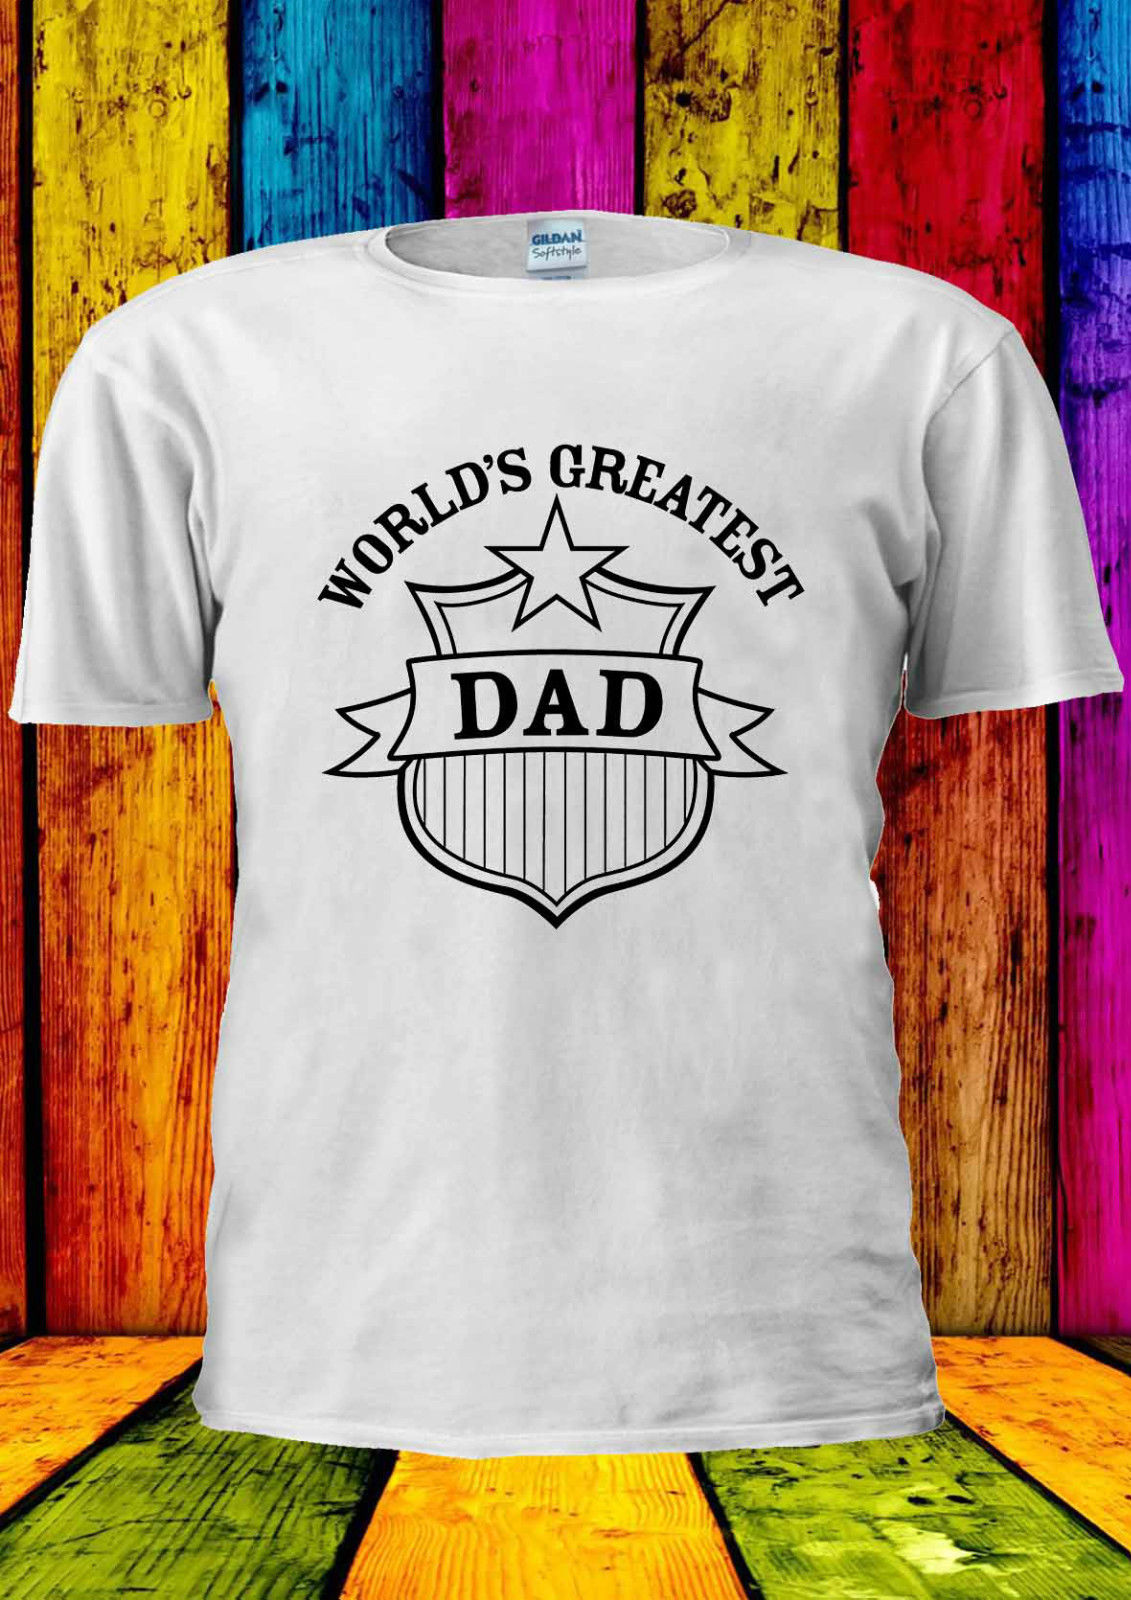 The Worlds Greatest Dad Day Father T-shirt Vest Top Men Women Unisex 1693 New T Shirts Funny Tops Tee New Unisex Funny Tops